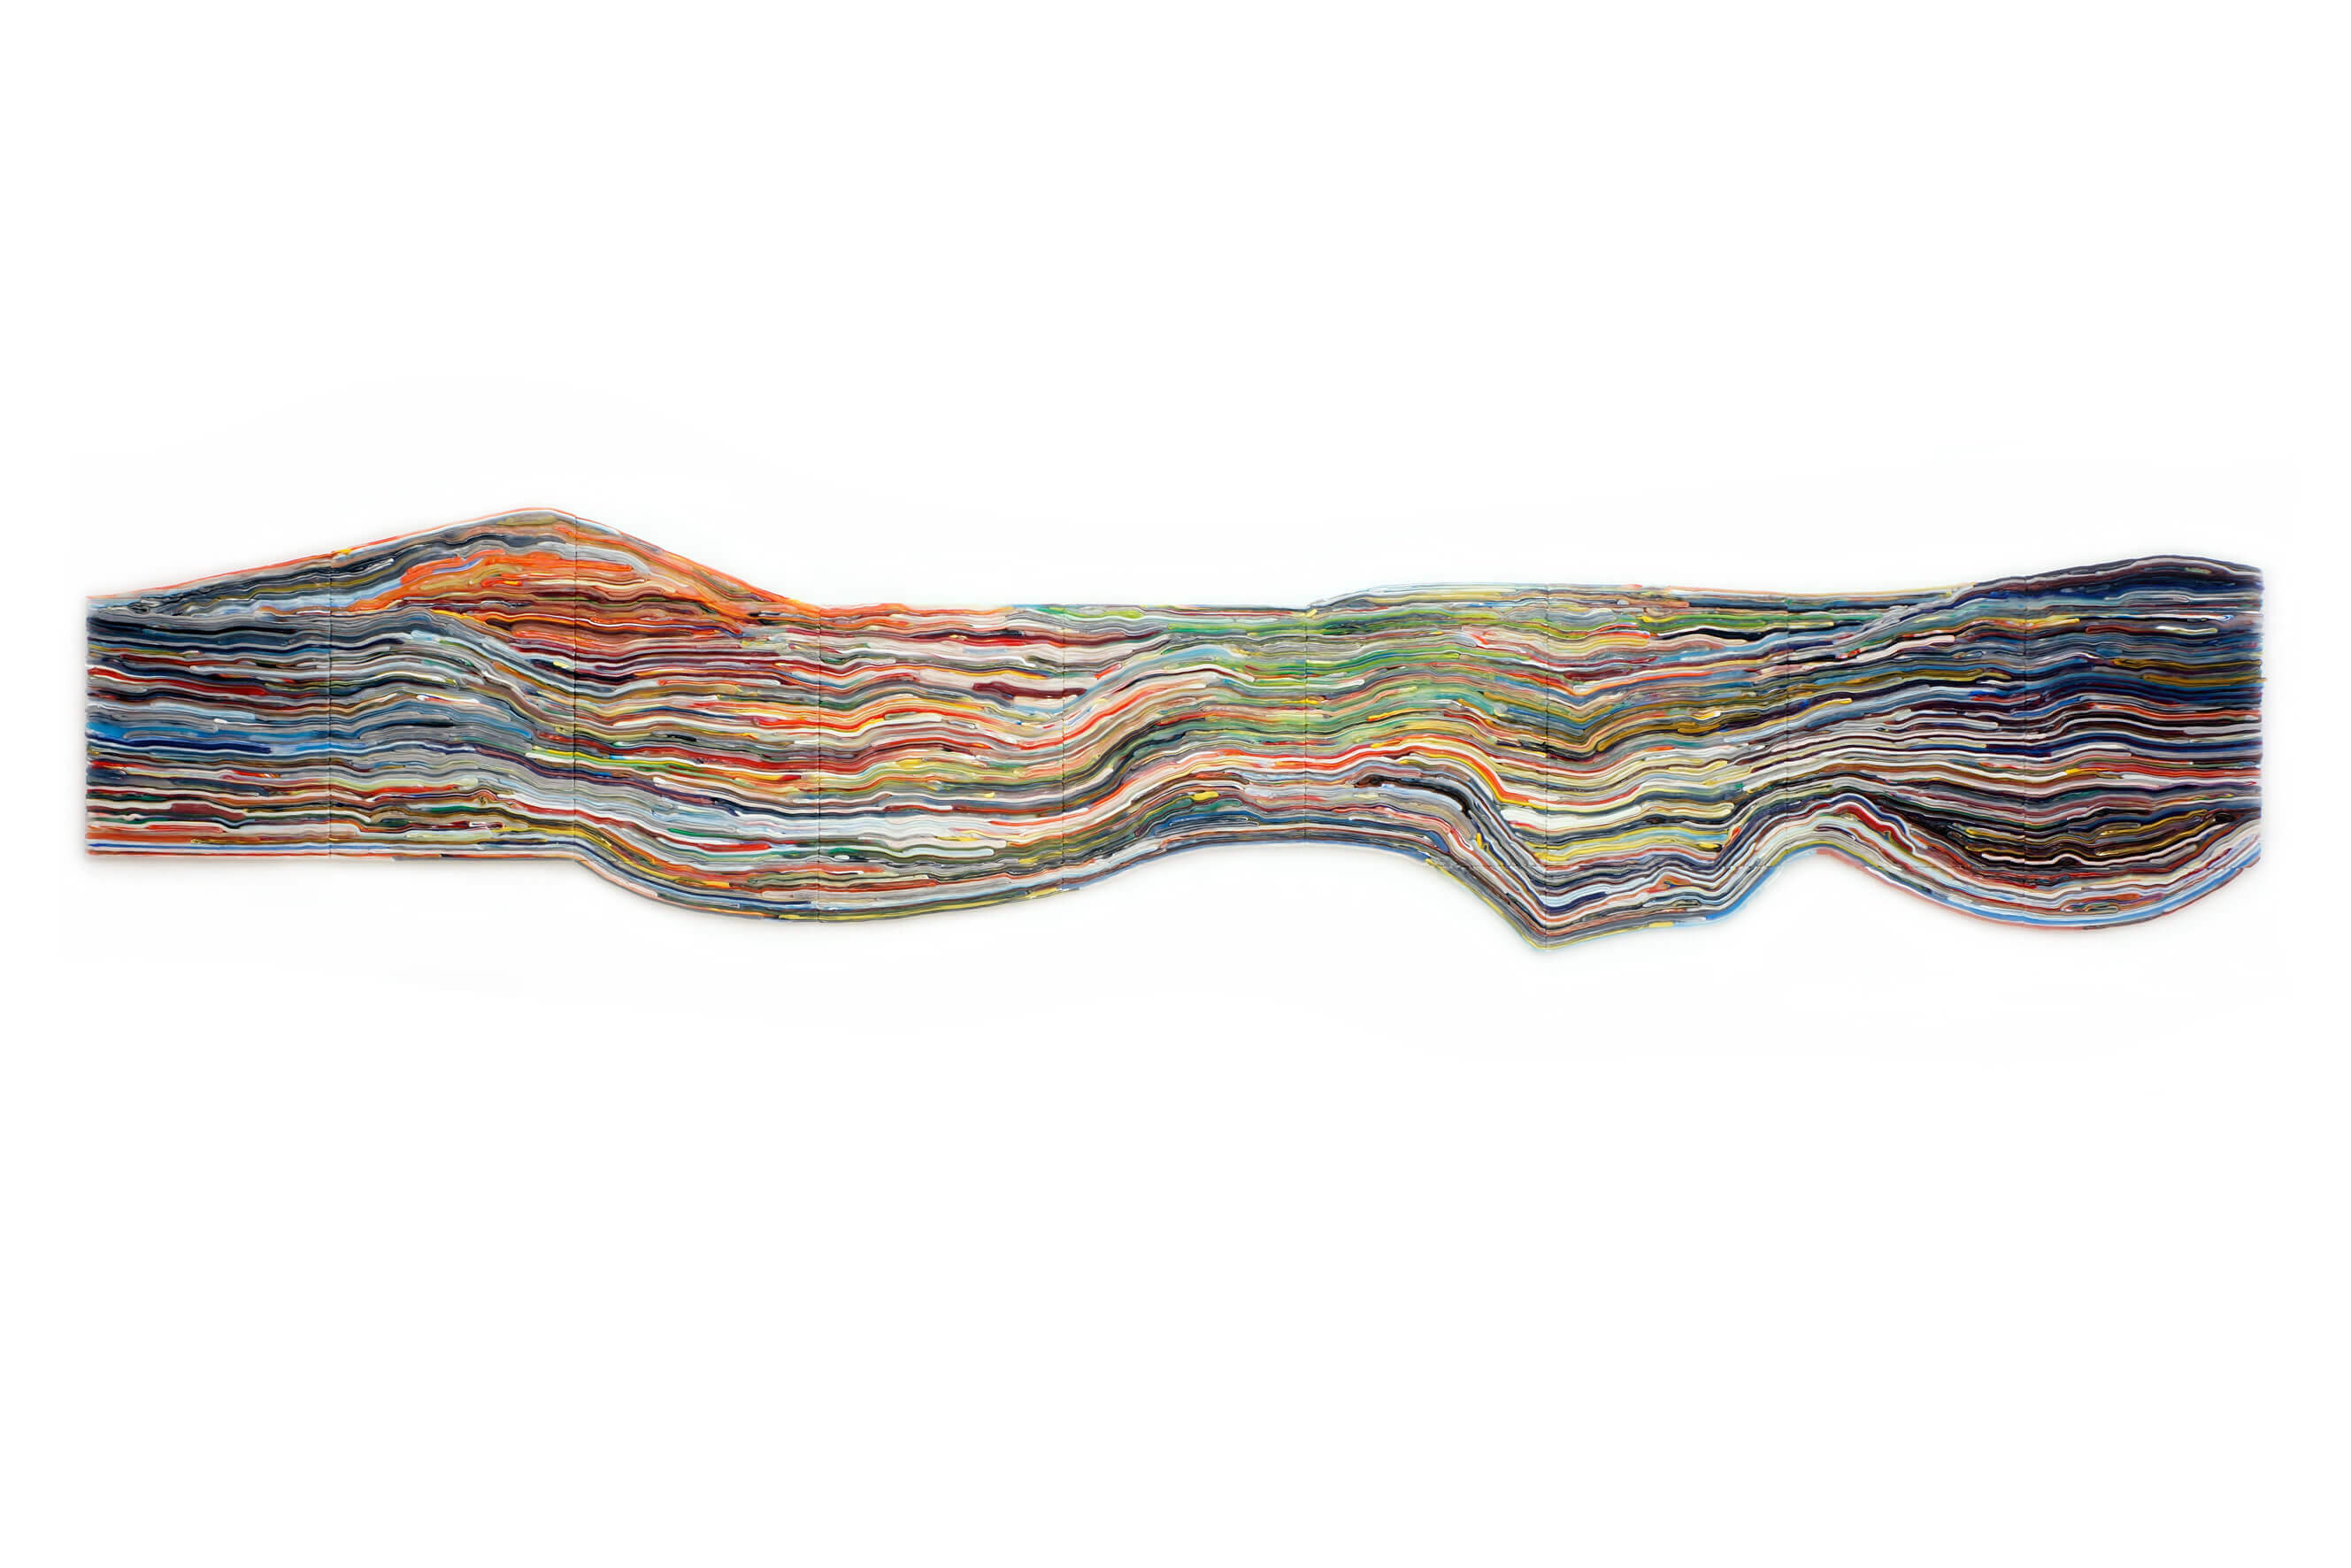 Shaped Stripe Painting, 2016